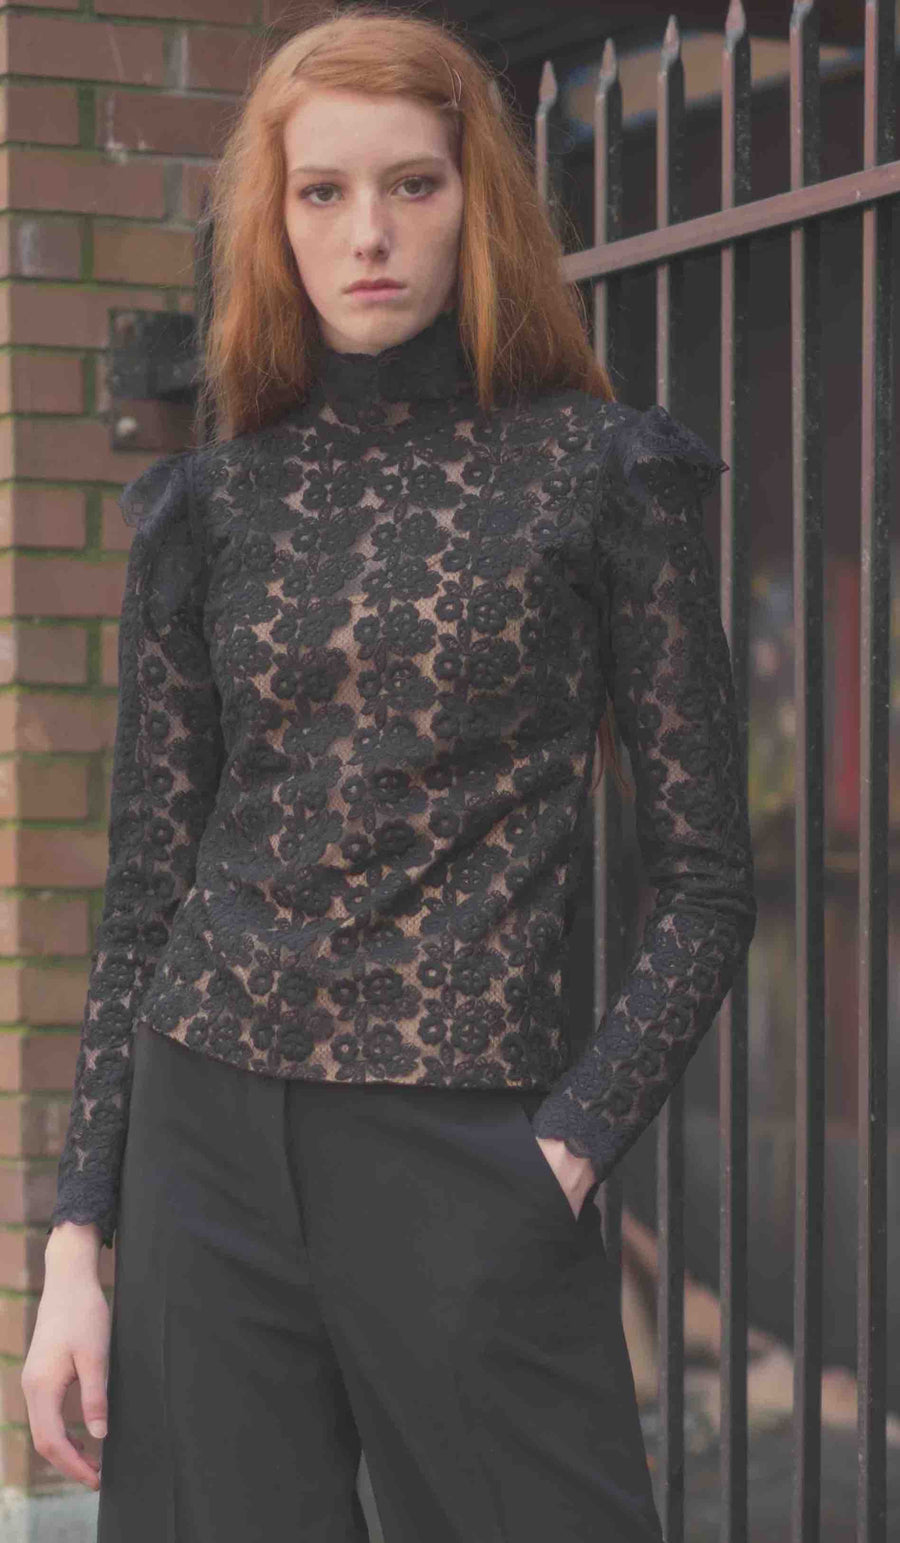 Black Lace Turtleneck by Atelieri